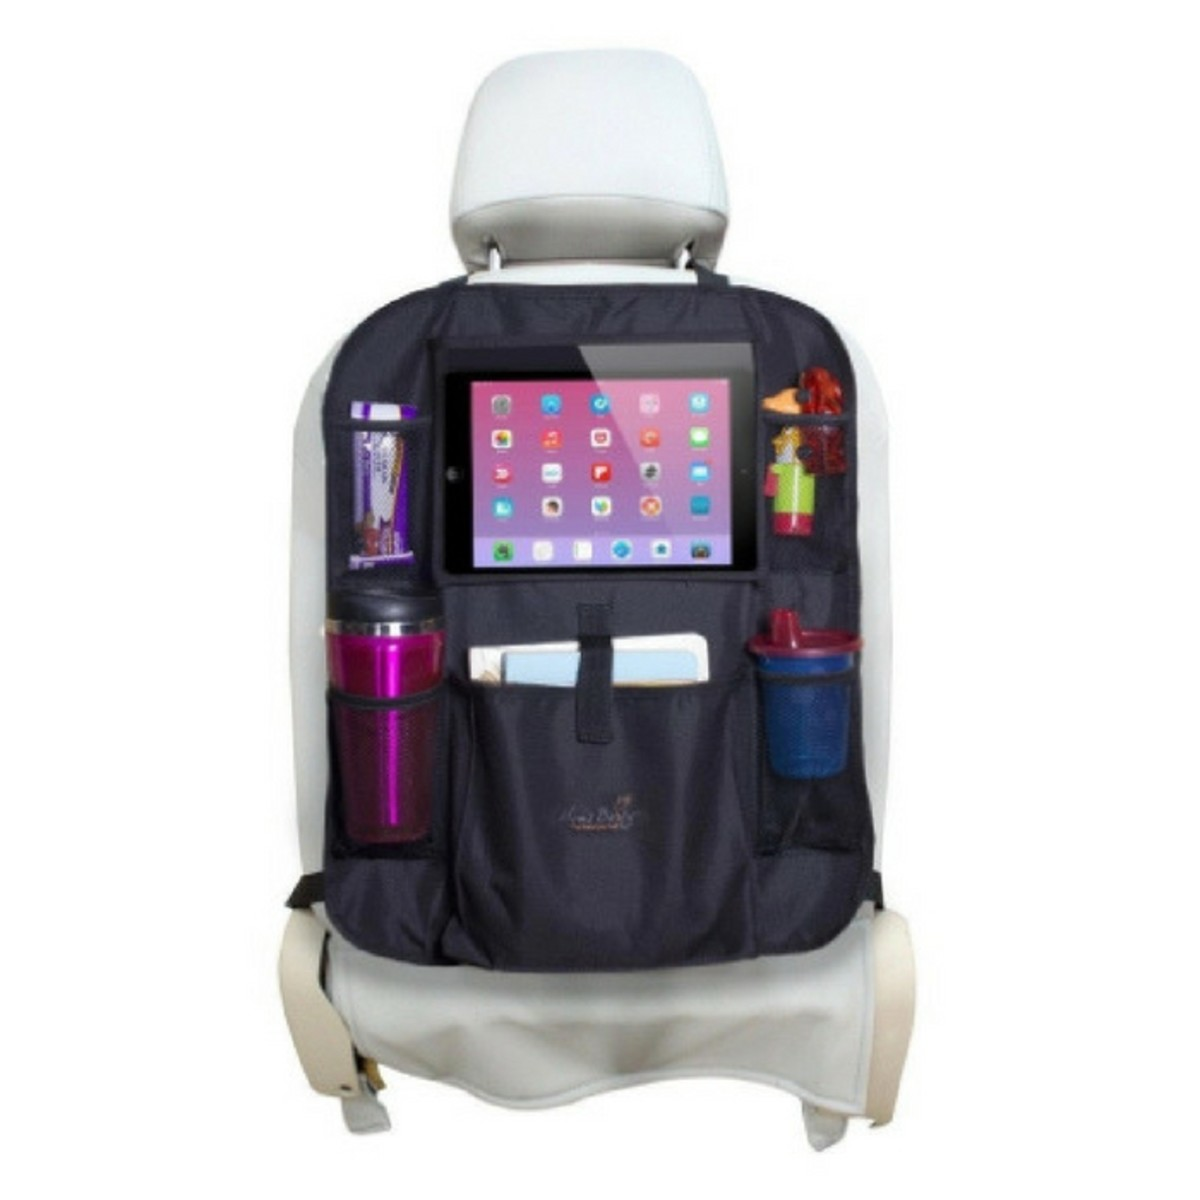 Backseat Organizer with Tablet Holder